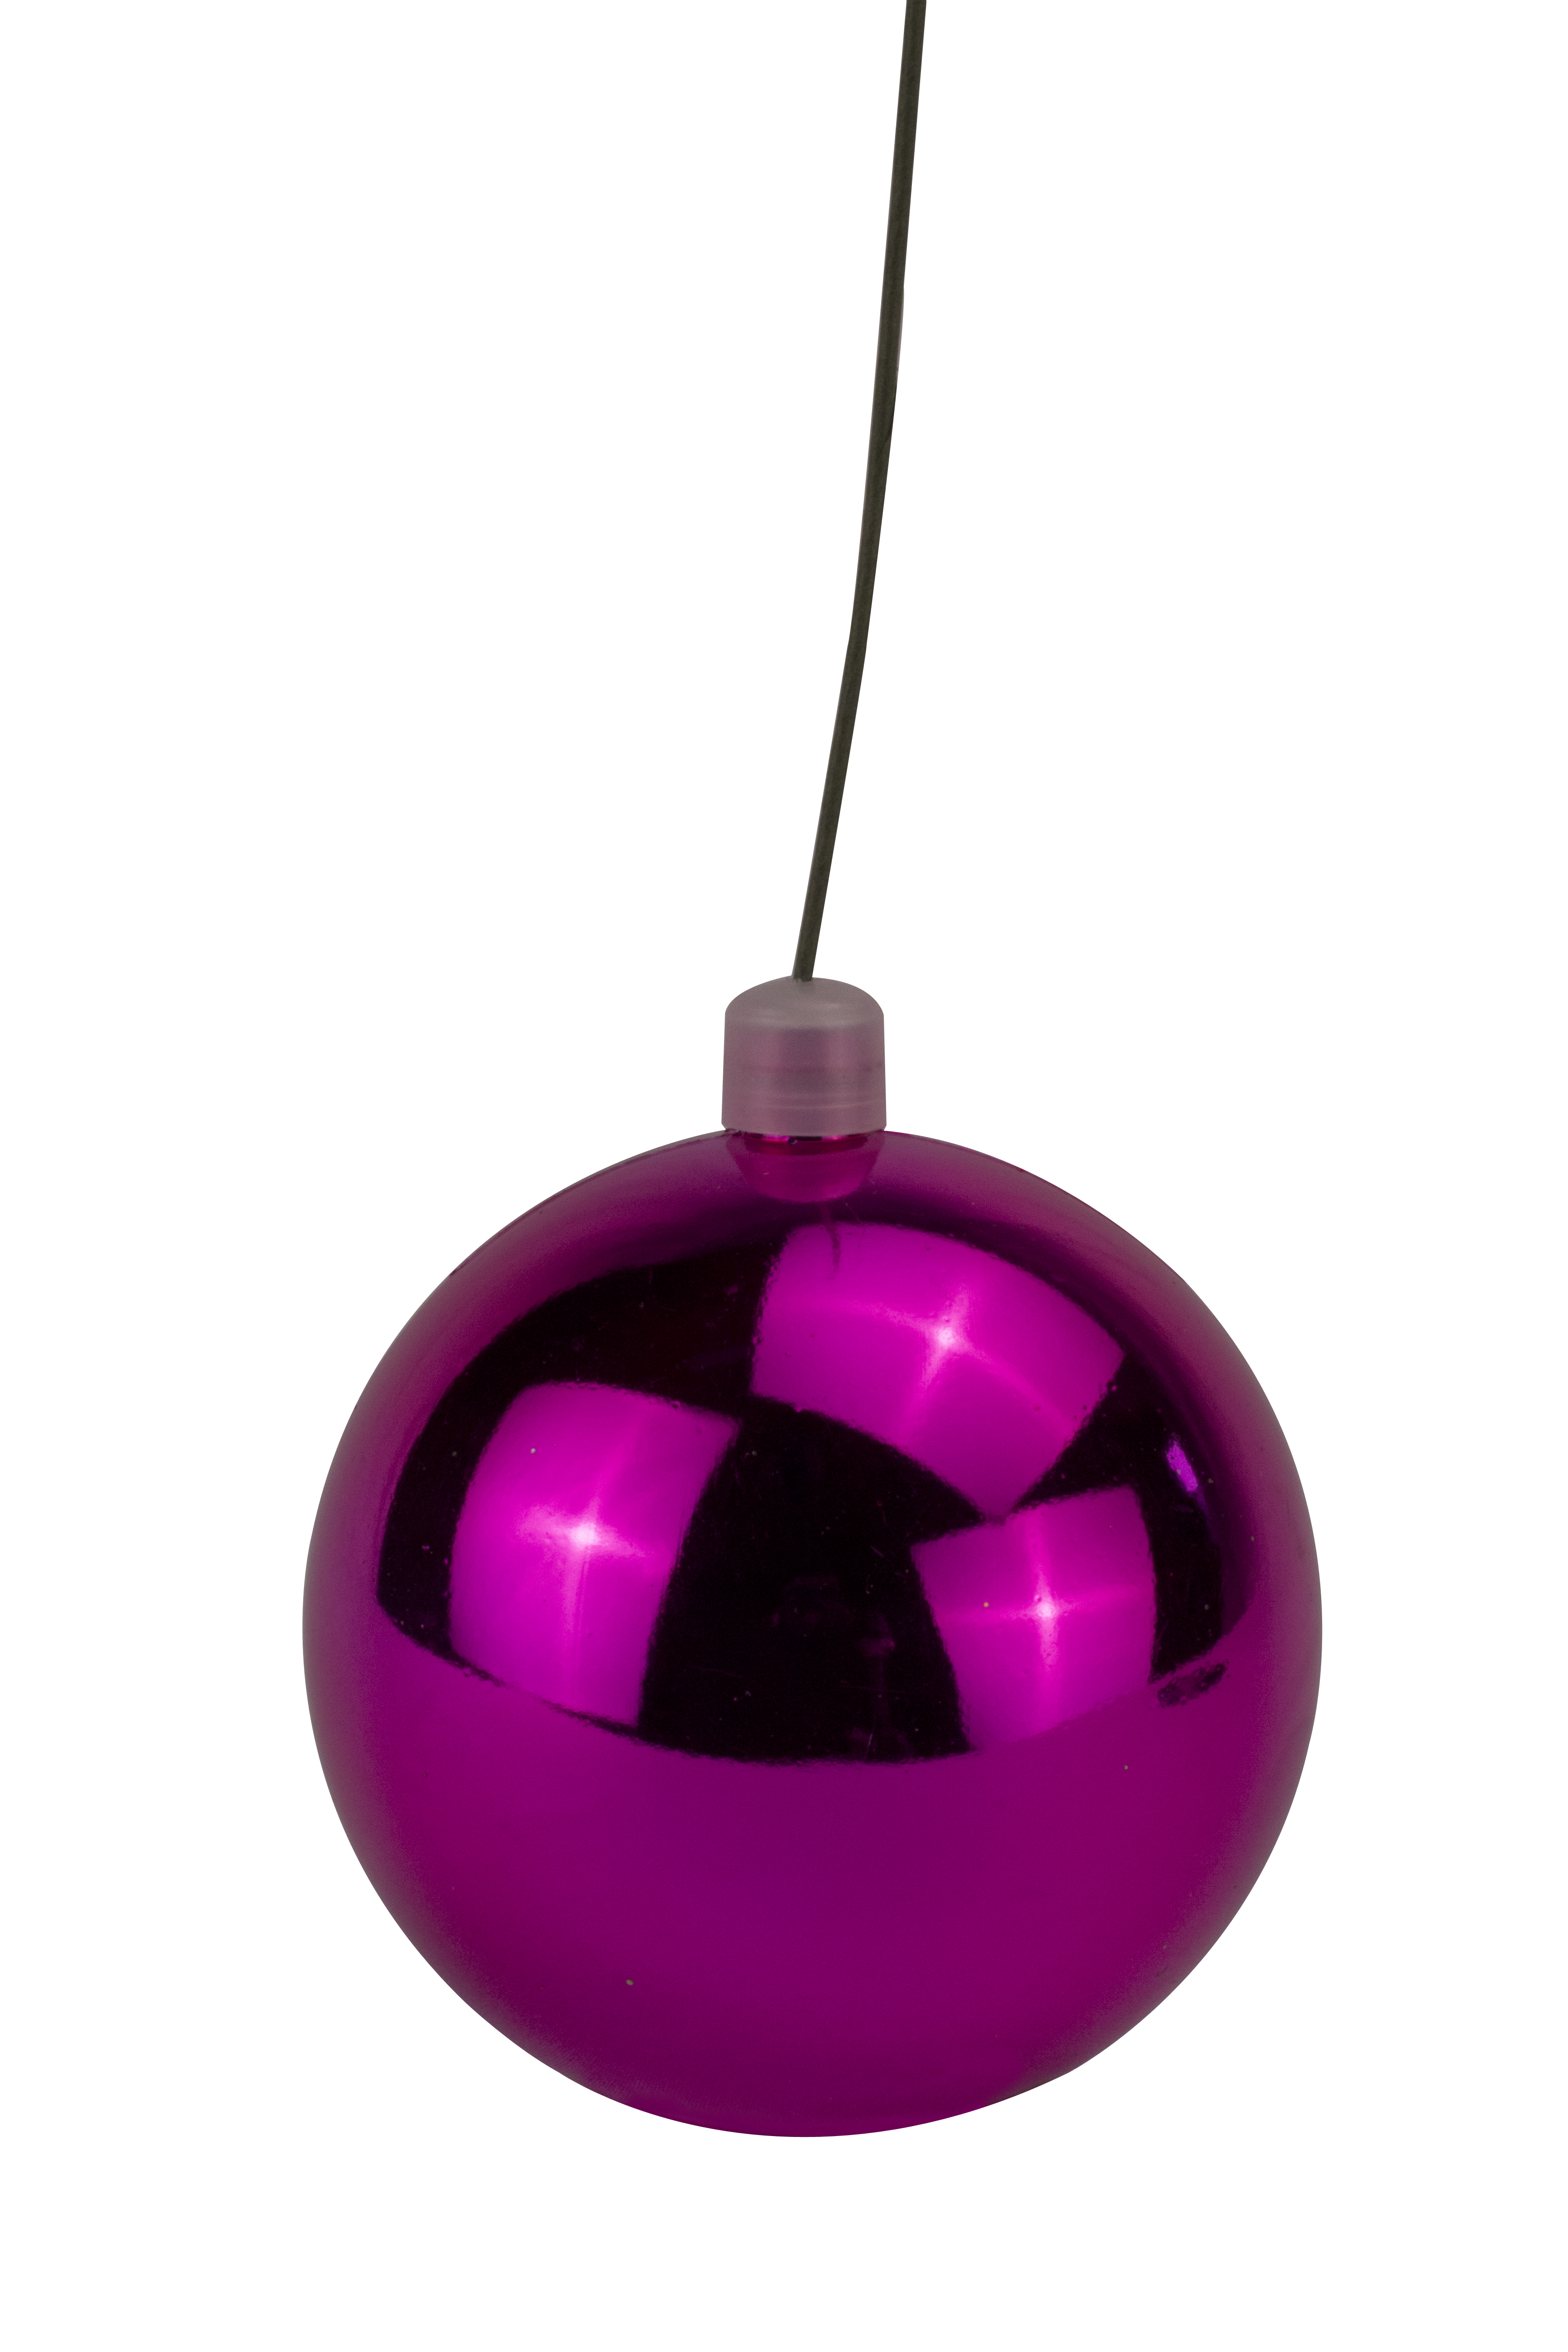 200mm Shiny Pink Ball Ornament with Wire, UV Coated